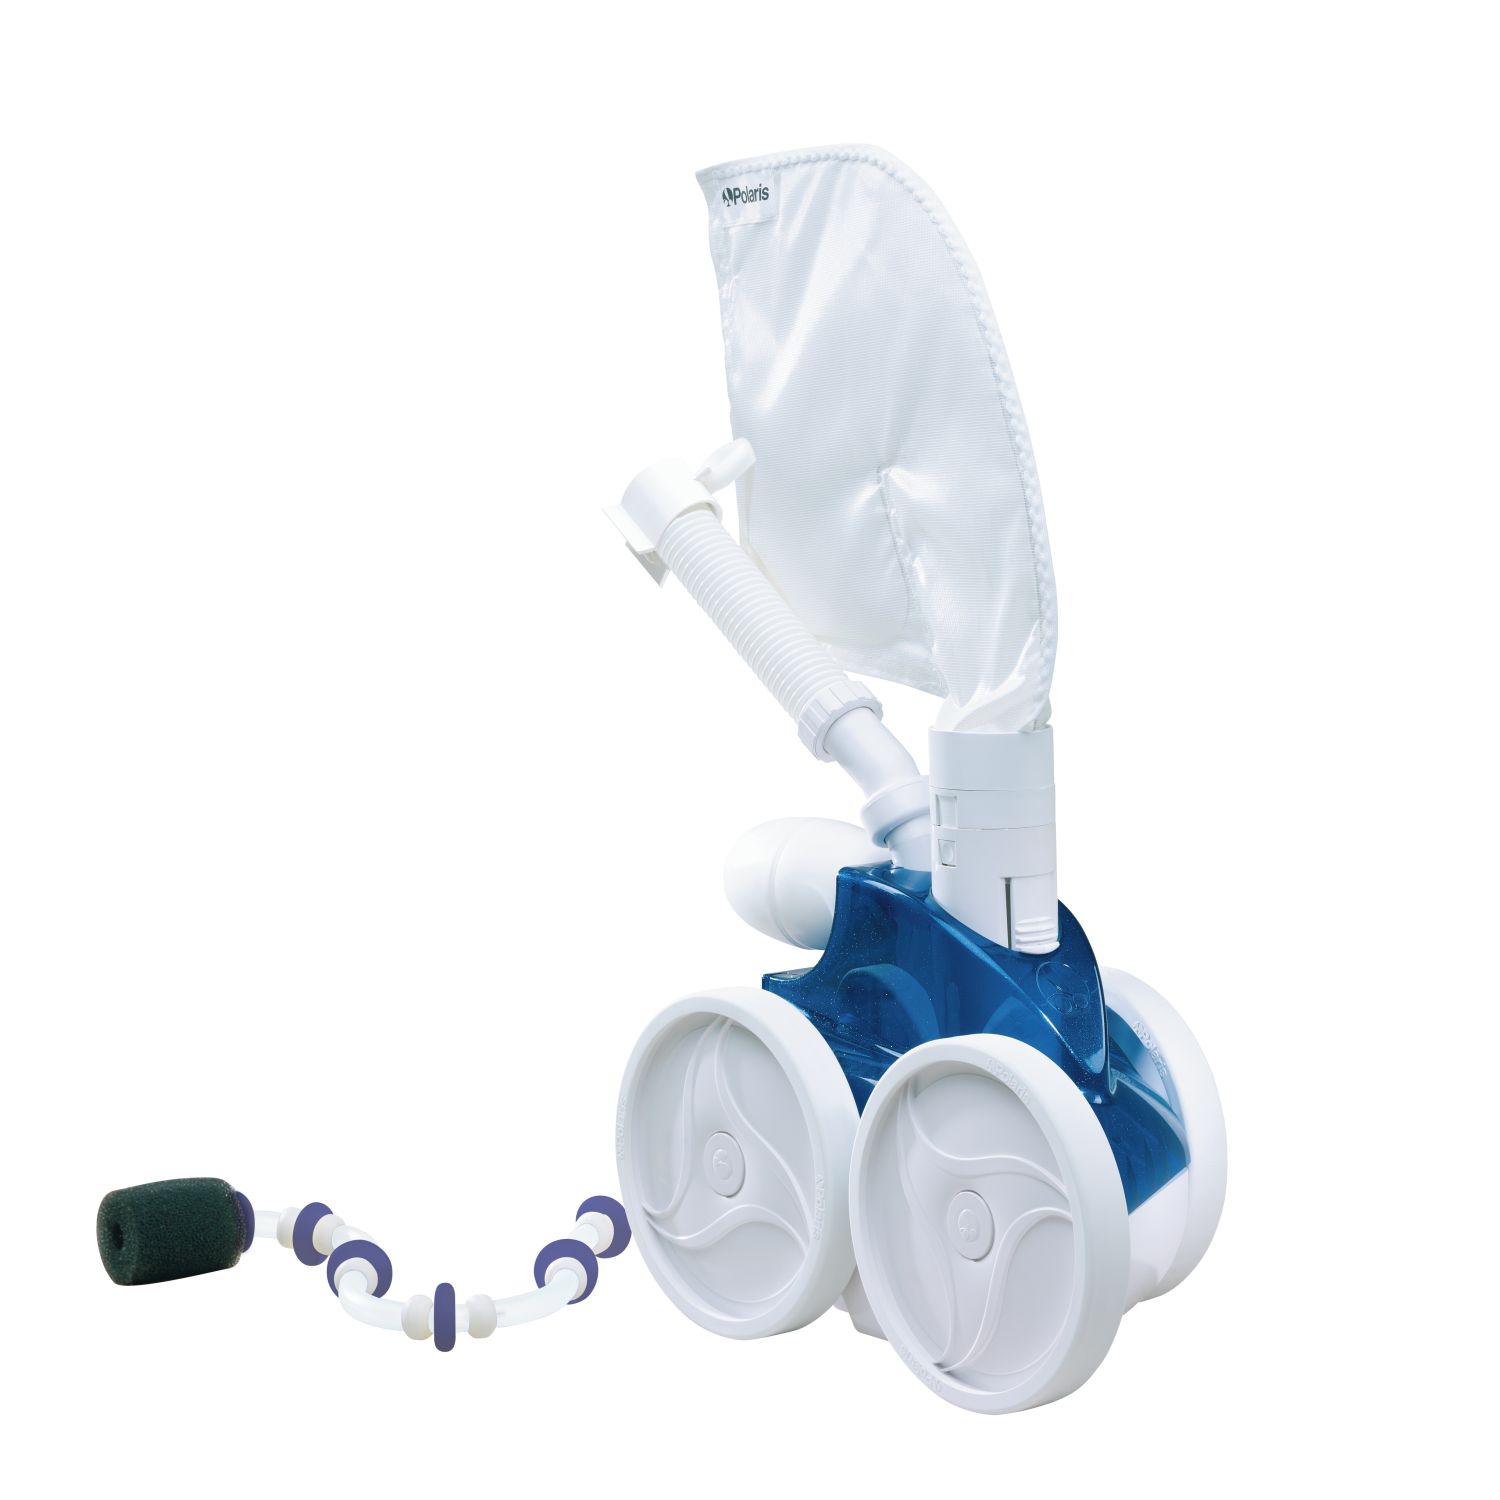 Polaris 360 Pressure Pool Cleaner | #1 Swimming Pool Cleaner ...